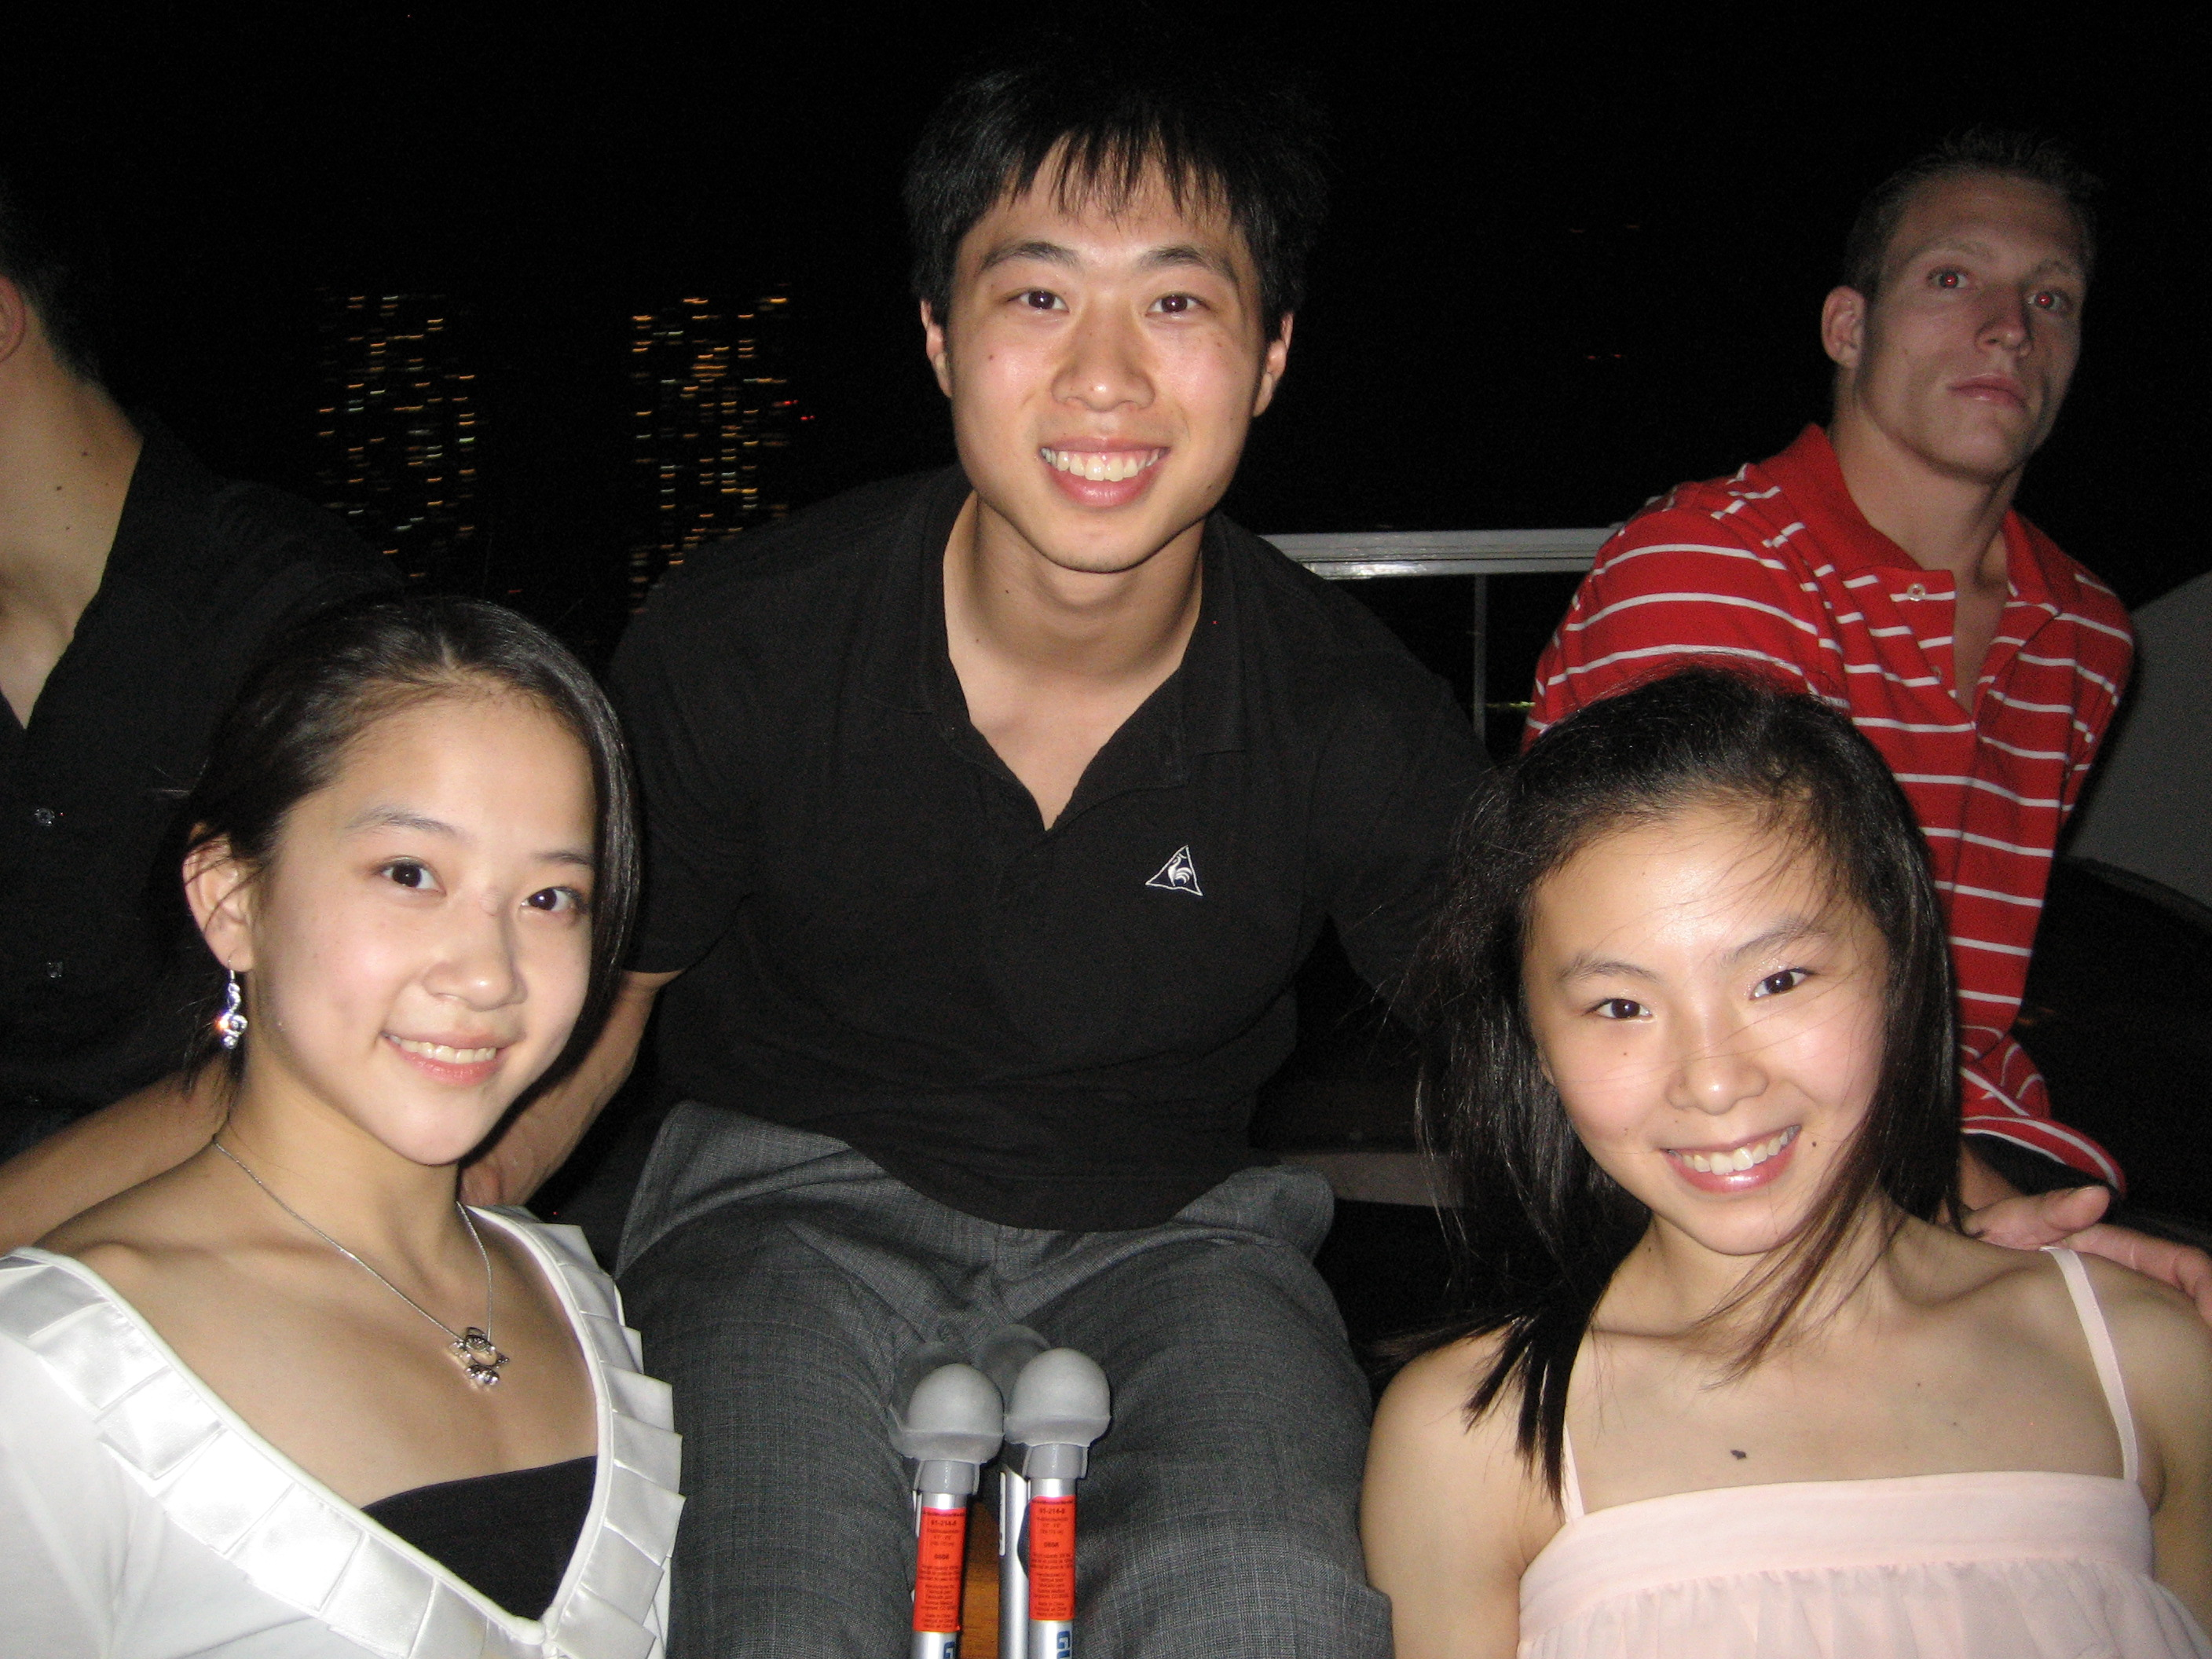 R - Zhang Jing, C - Me, R - He Kexin (Olympic Gold medalist)